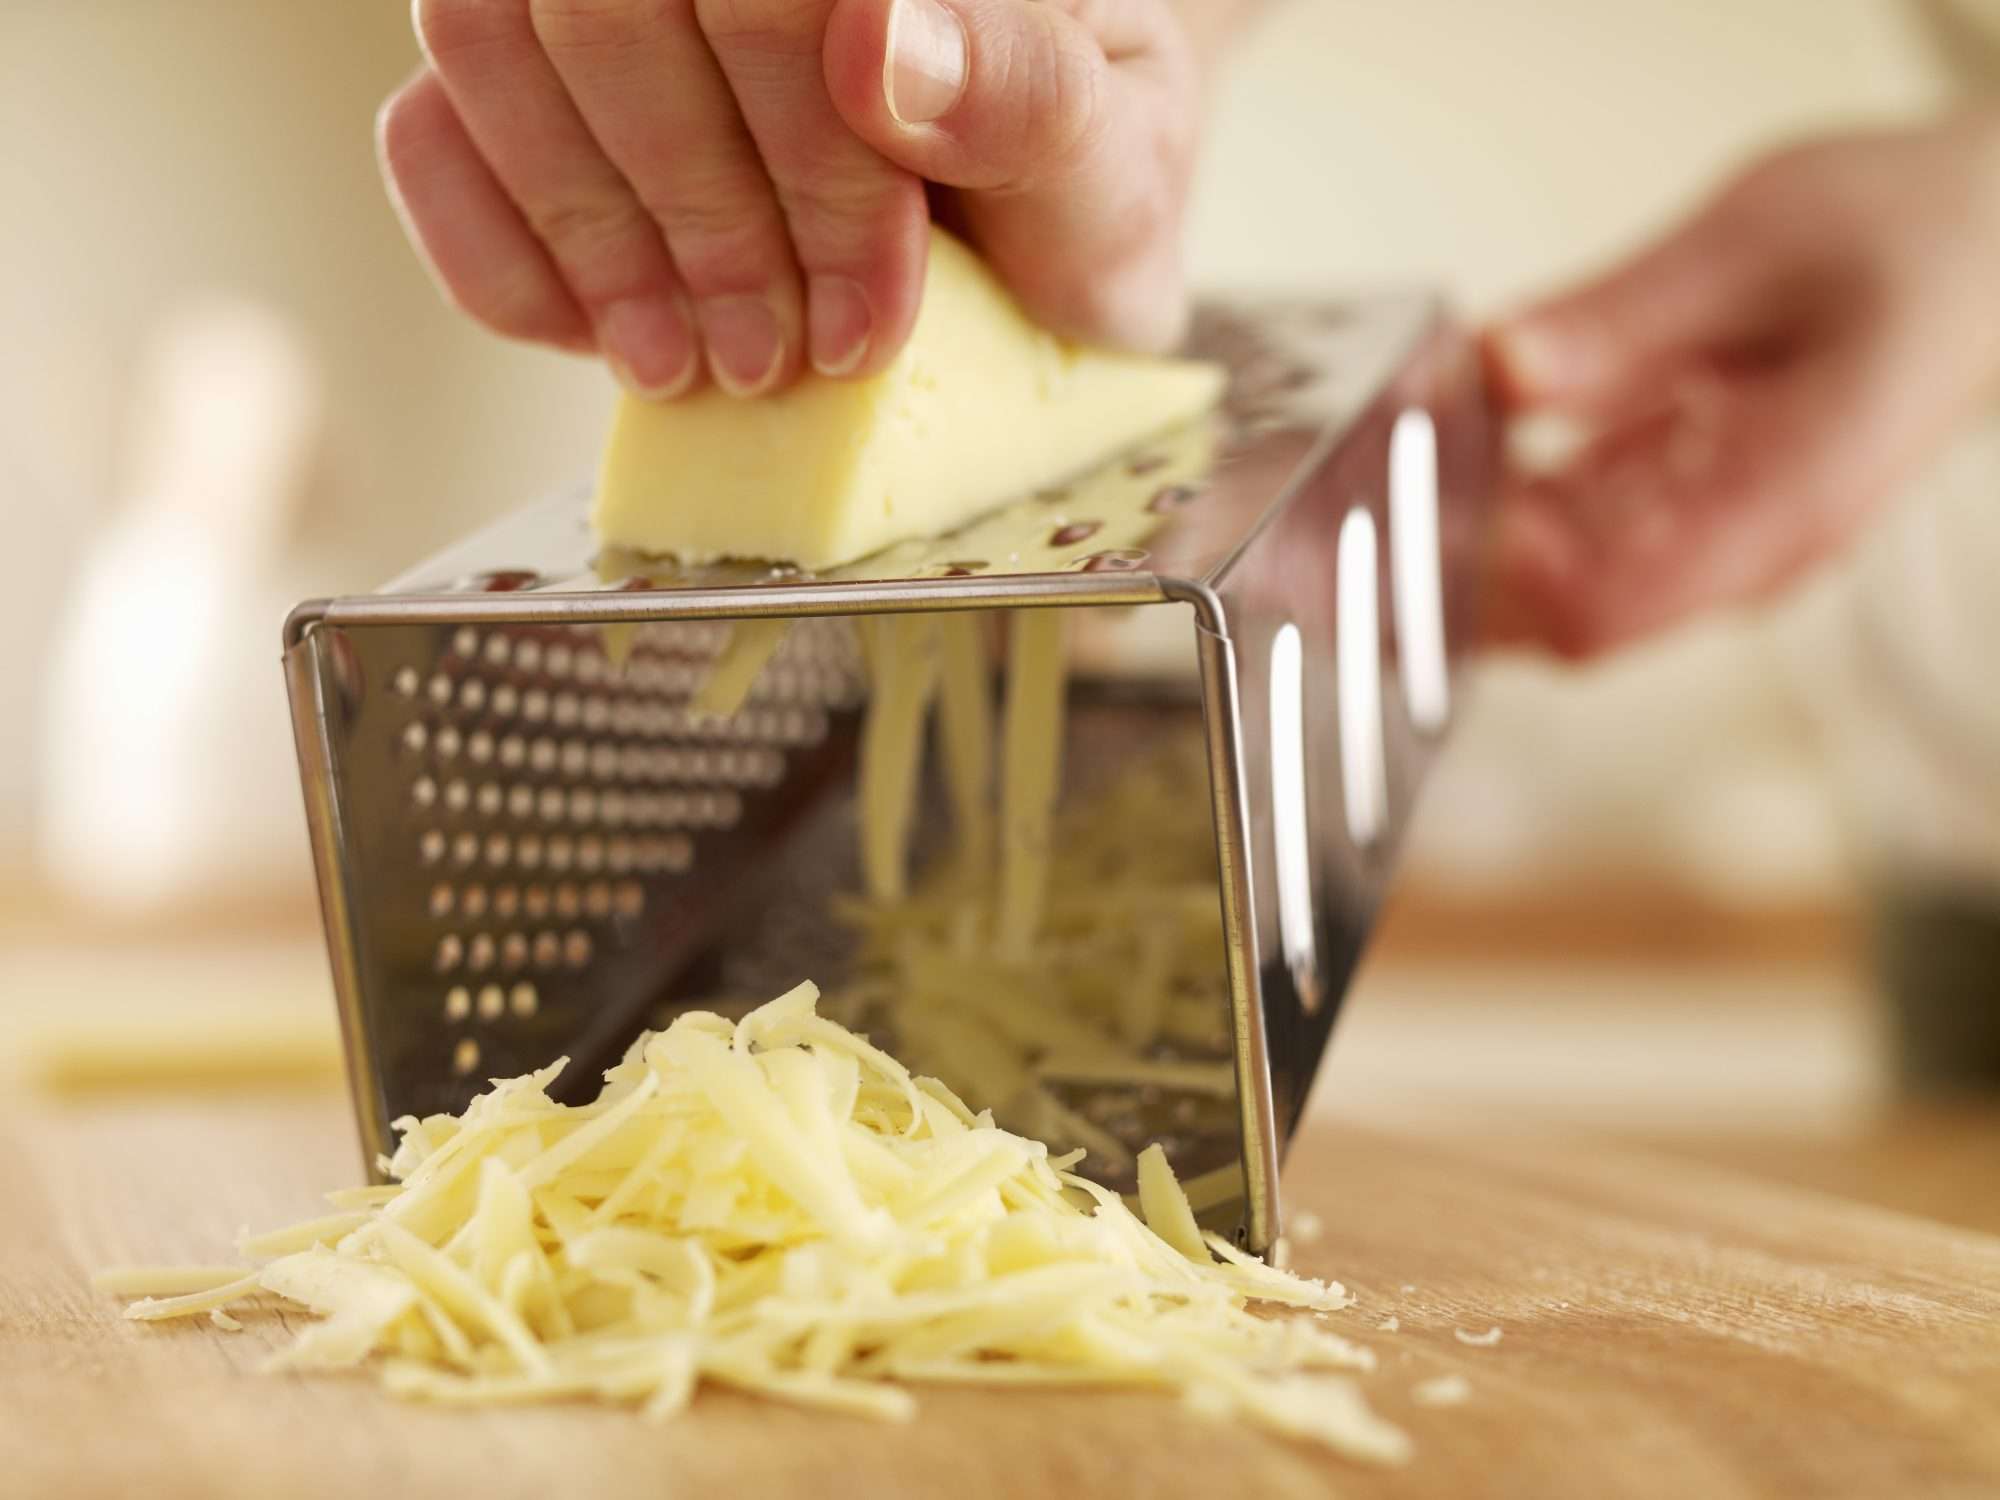 Shredding Cheese with Grater